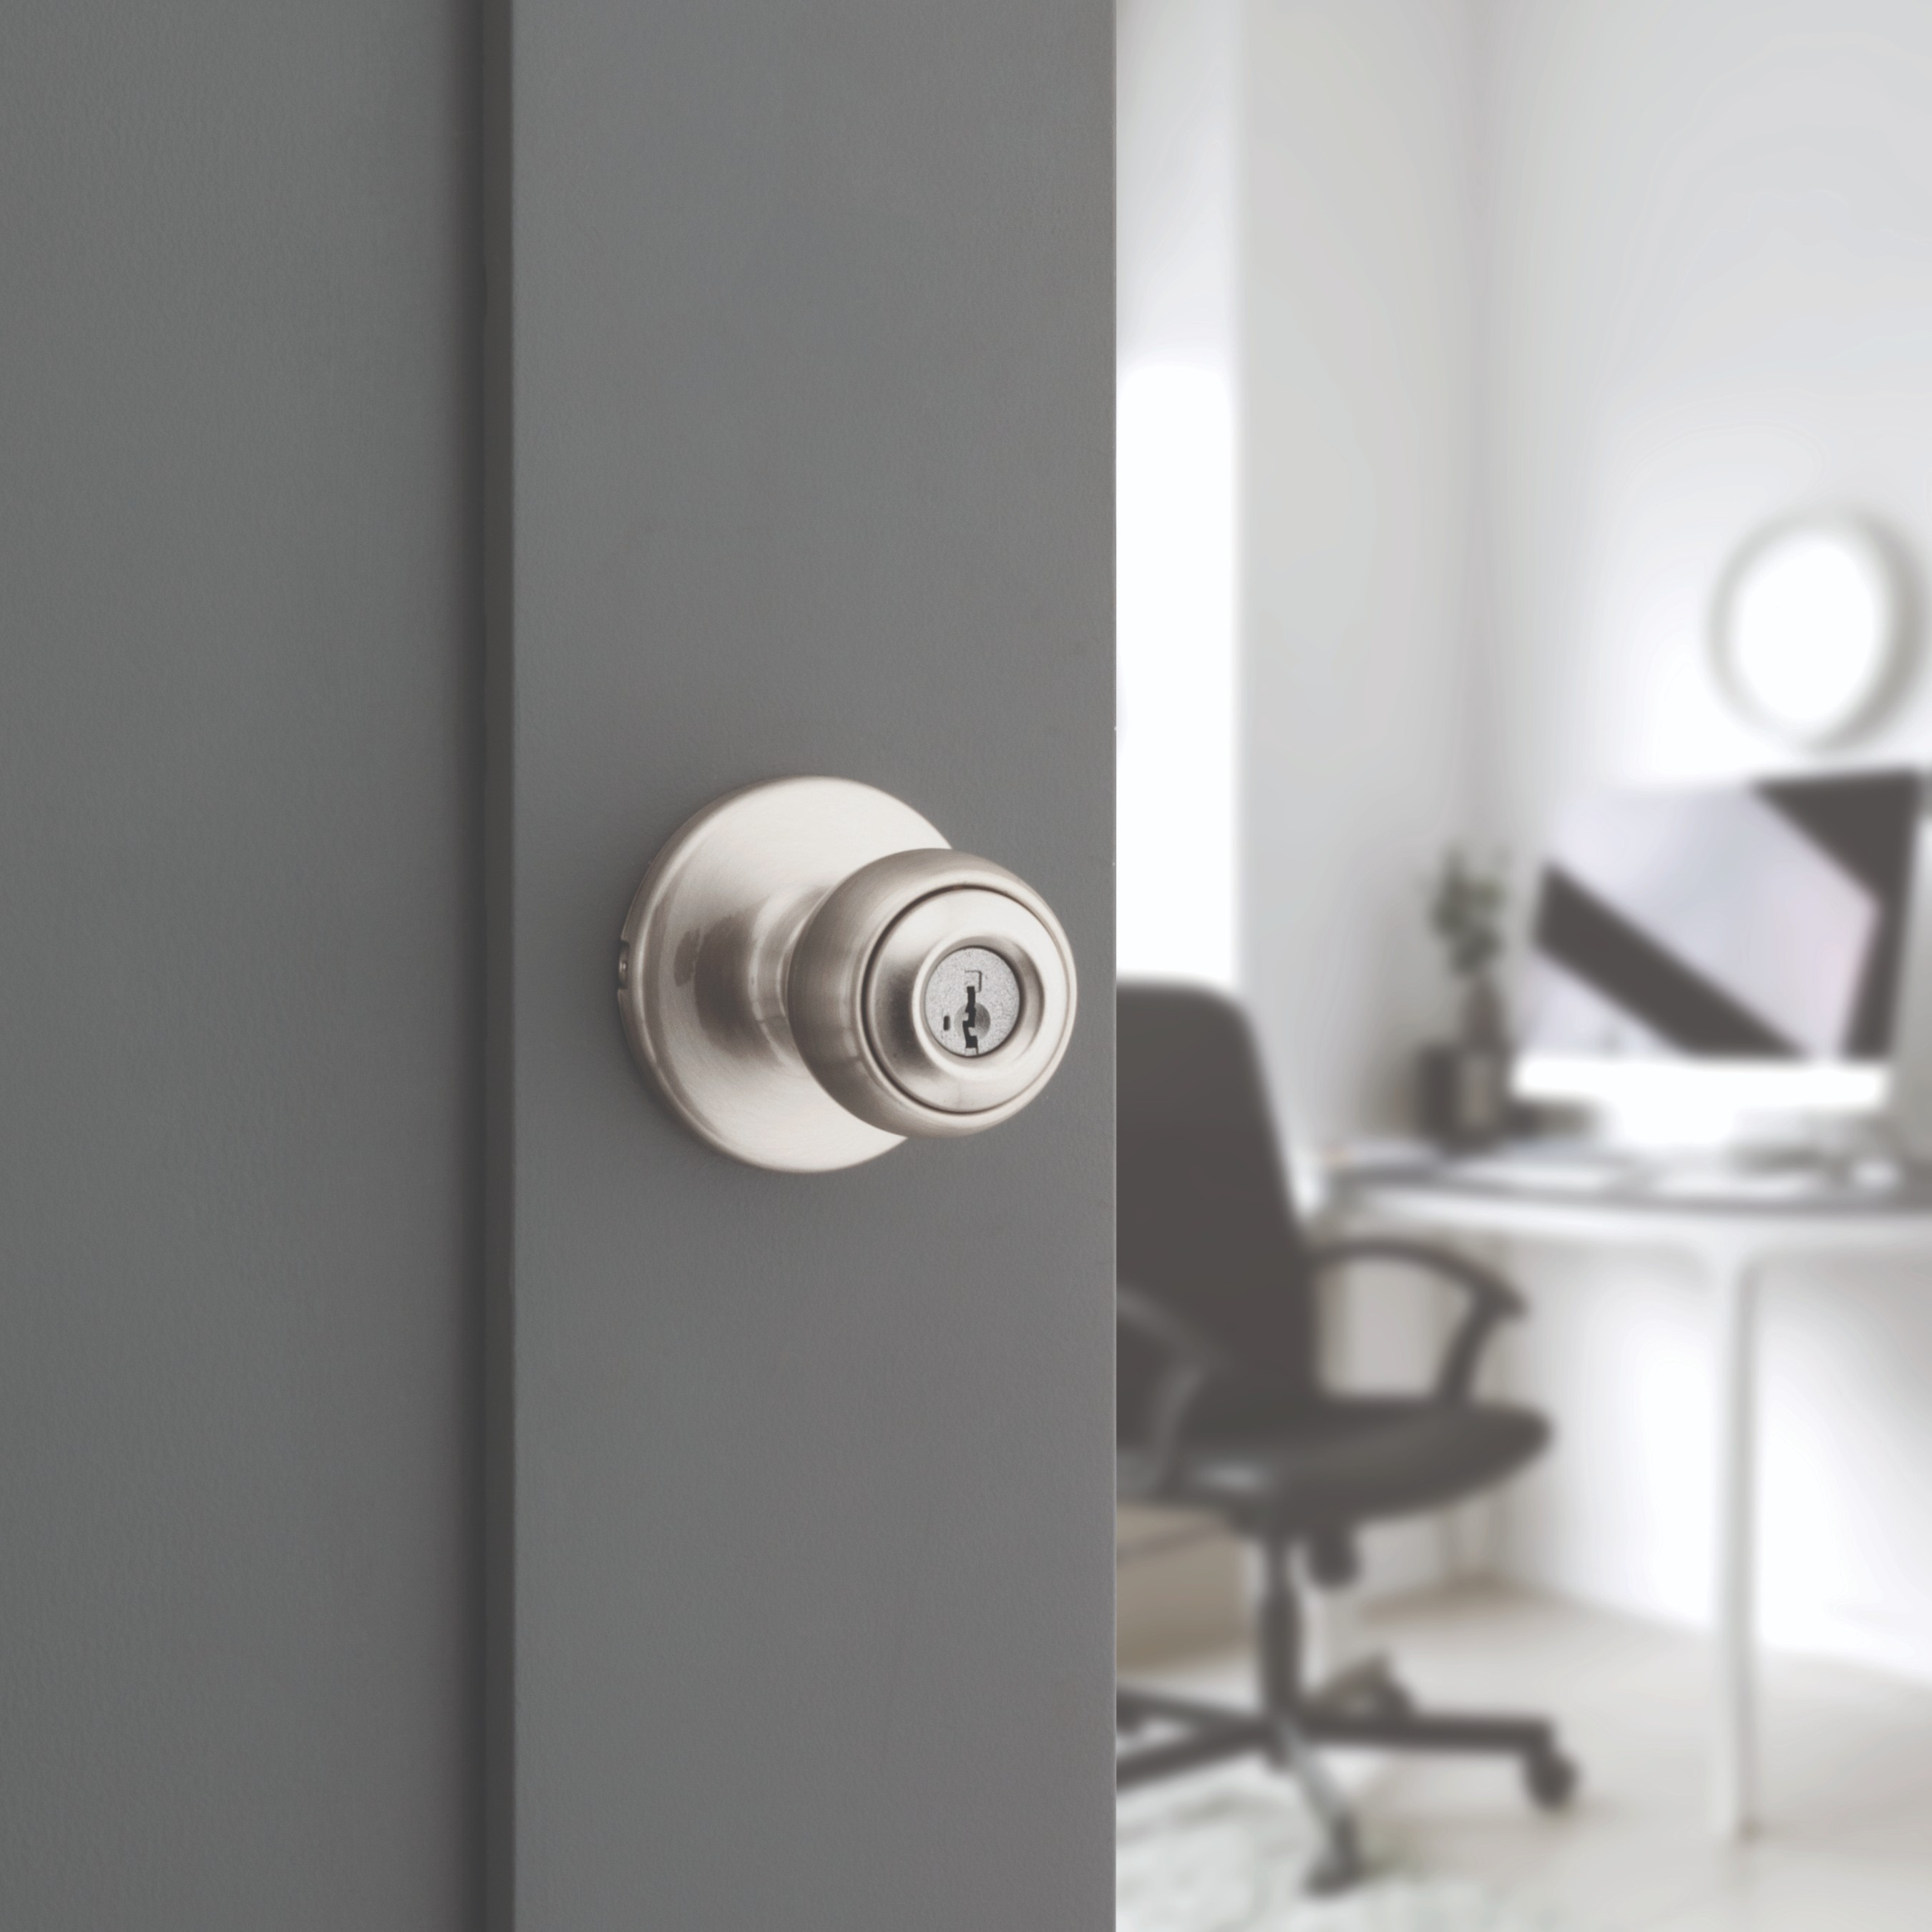 Kwikset Microban® products offer antimicrobial protection while inhibiting the growth of bacteria on frequently touched door hardware in homes.